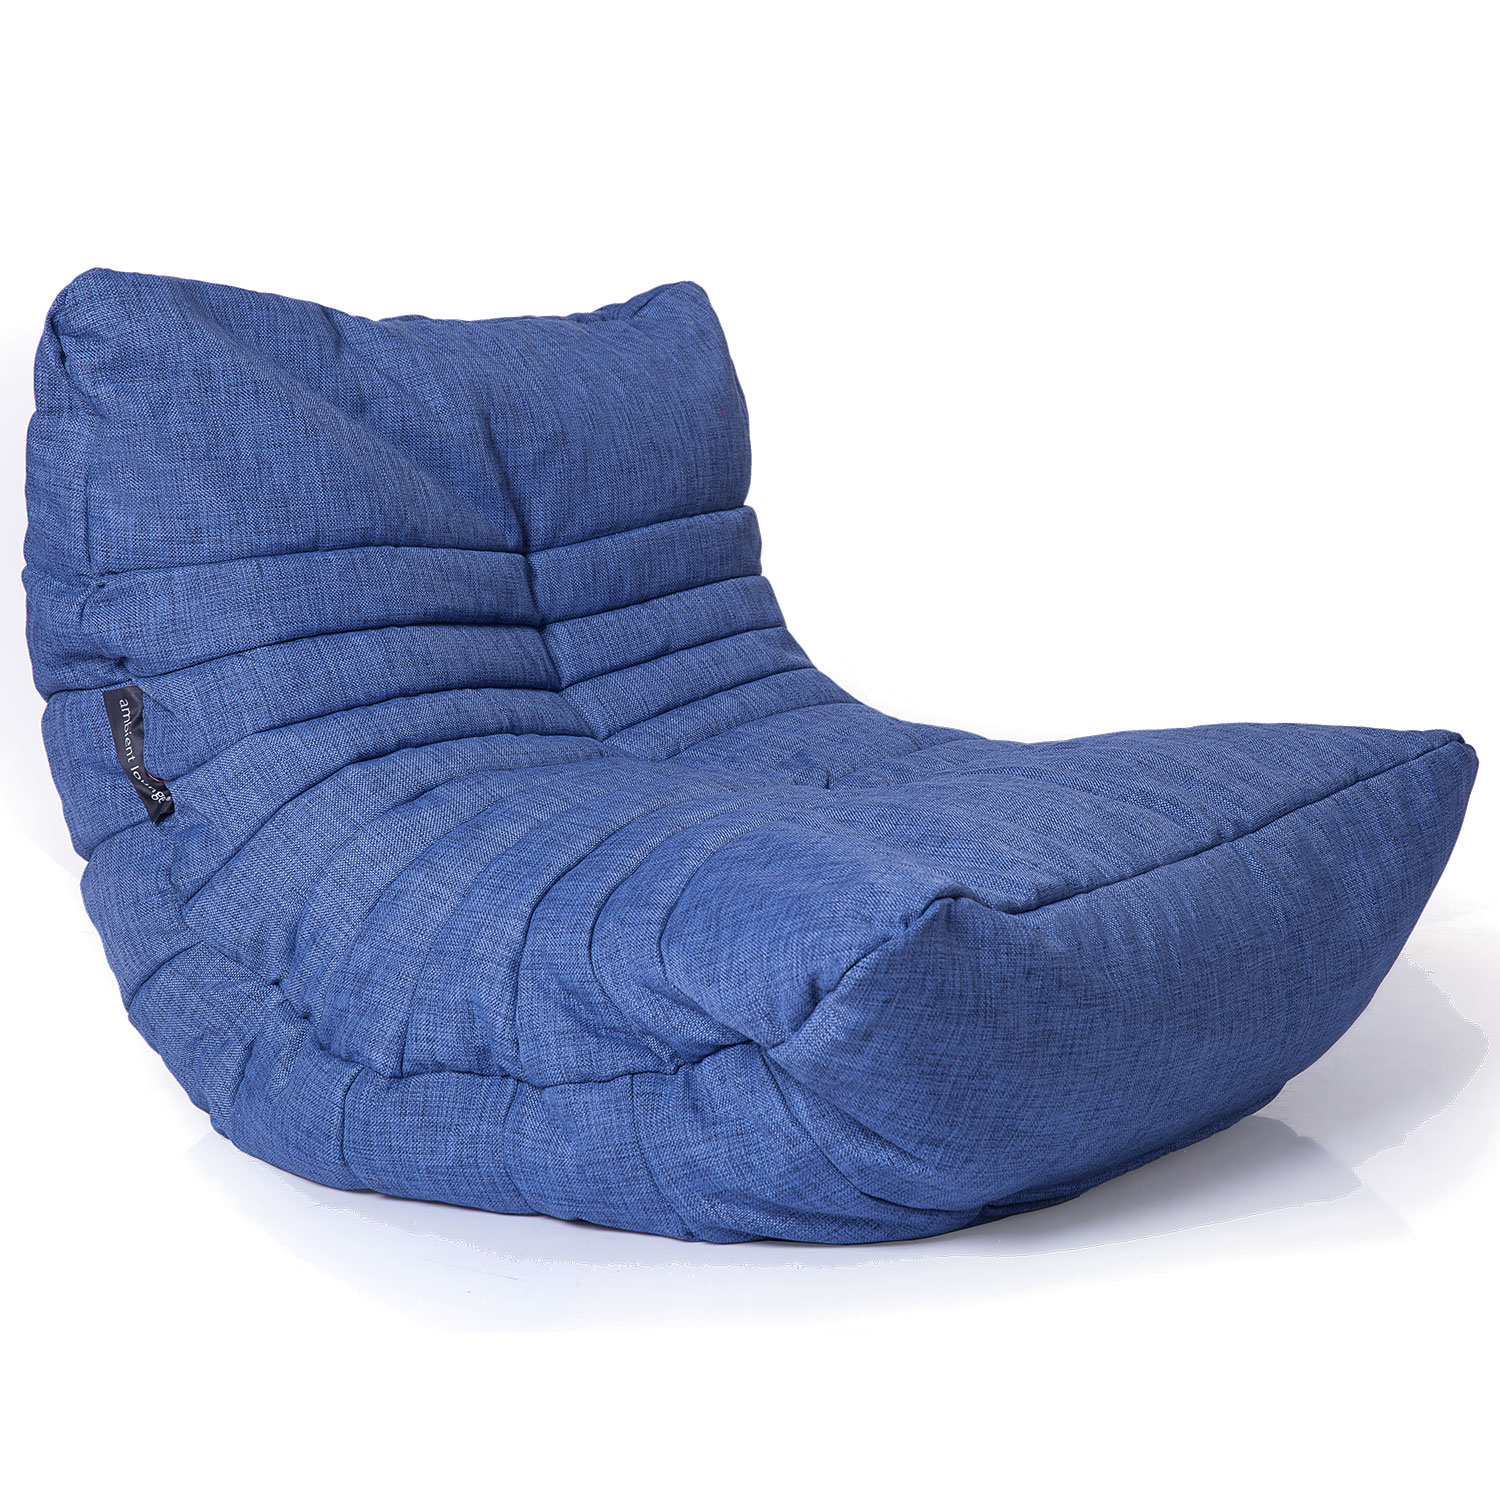 Interior Bean Bags Acoustic Sofa Blue Jazz Bean Bag